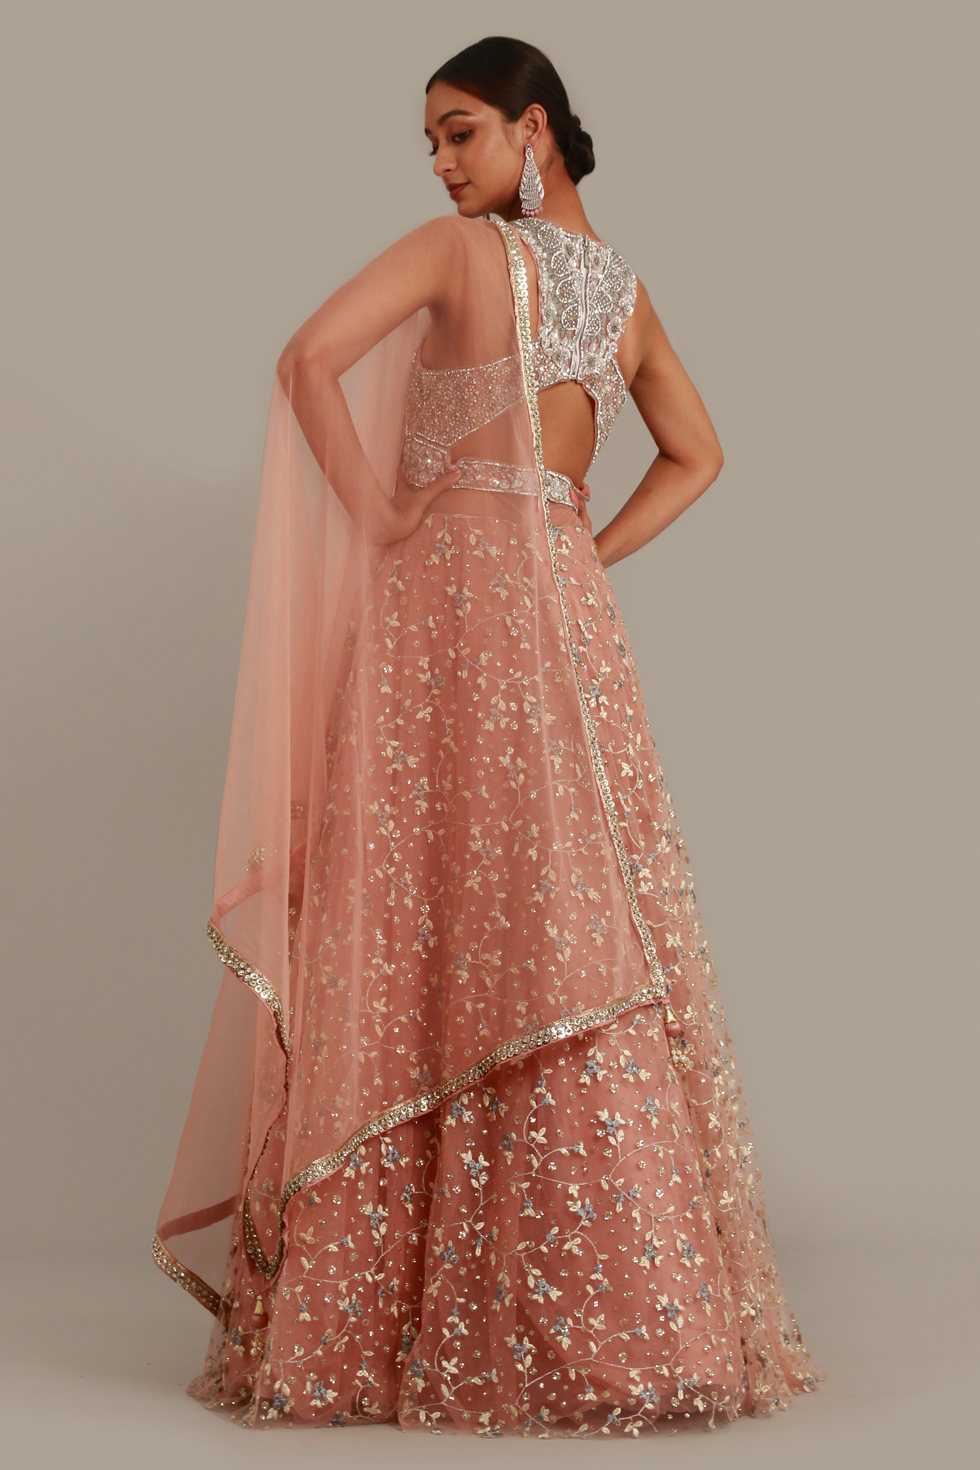 Petal pink Anarkali Gown set with contrast embroidery, matching dupatta and cutout blouse with silver embellishments